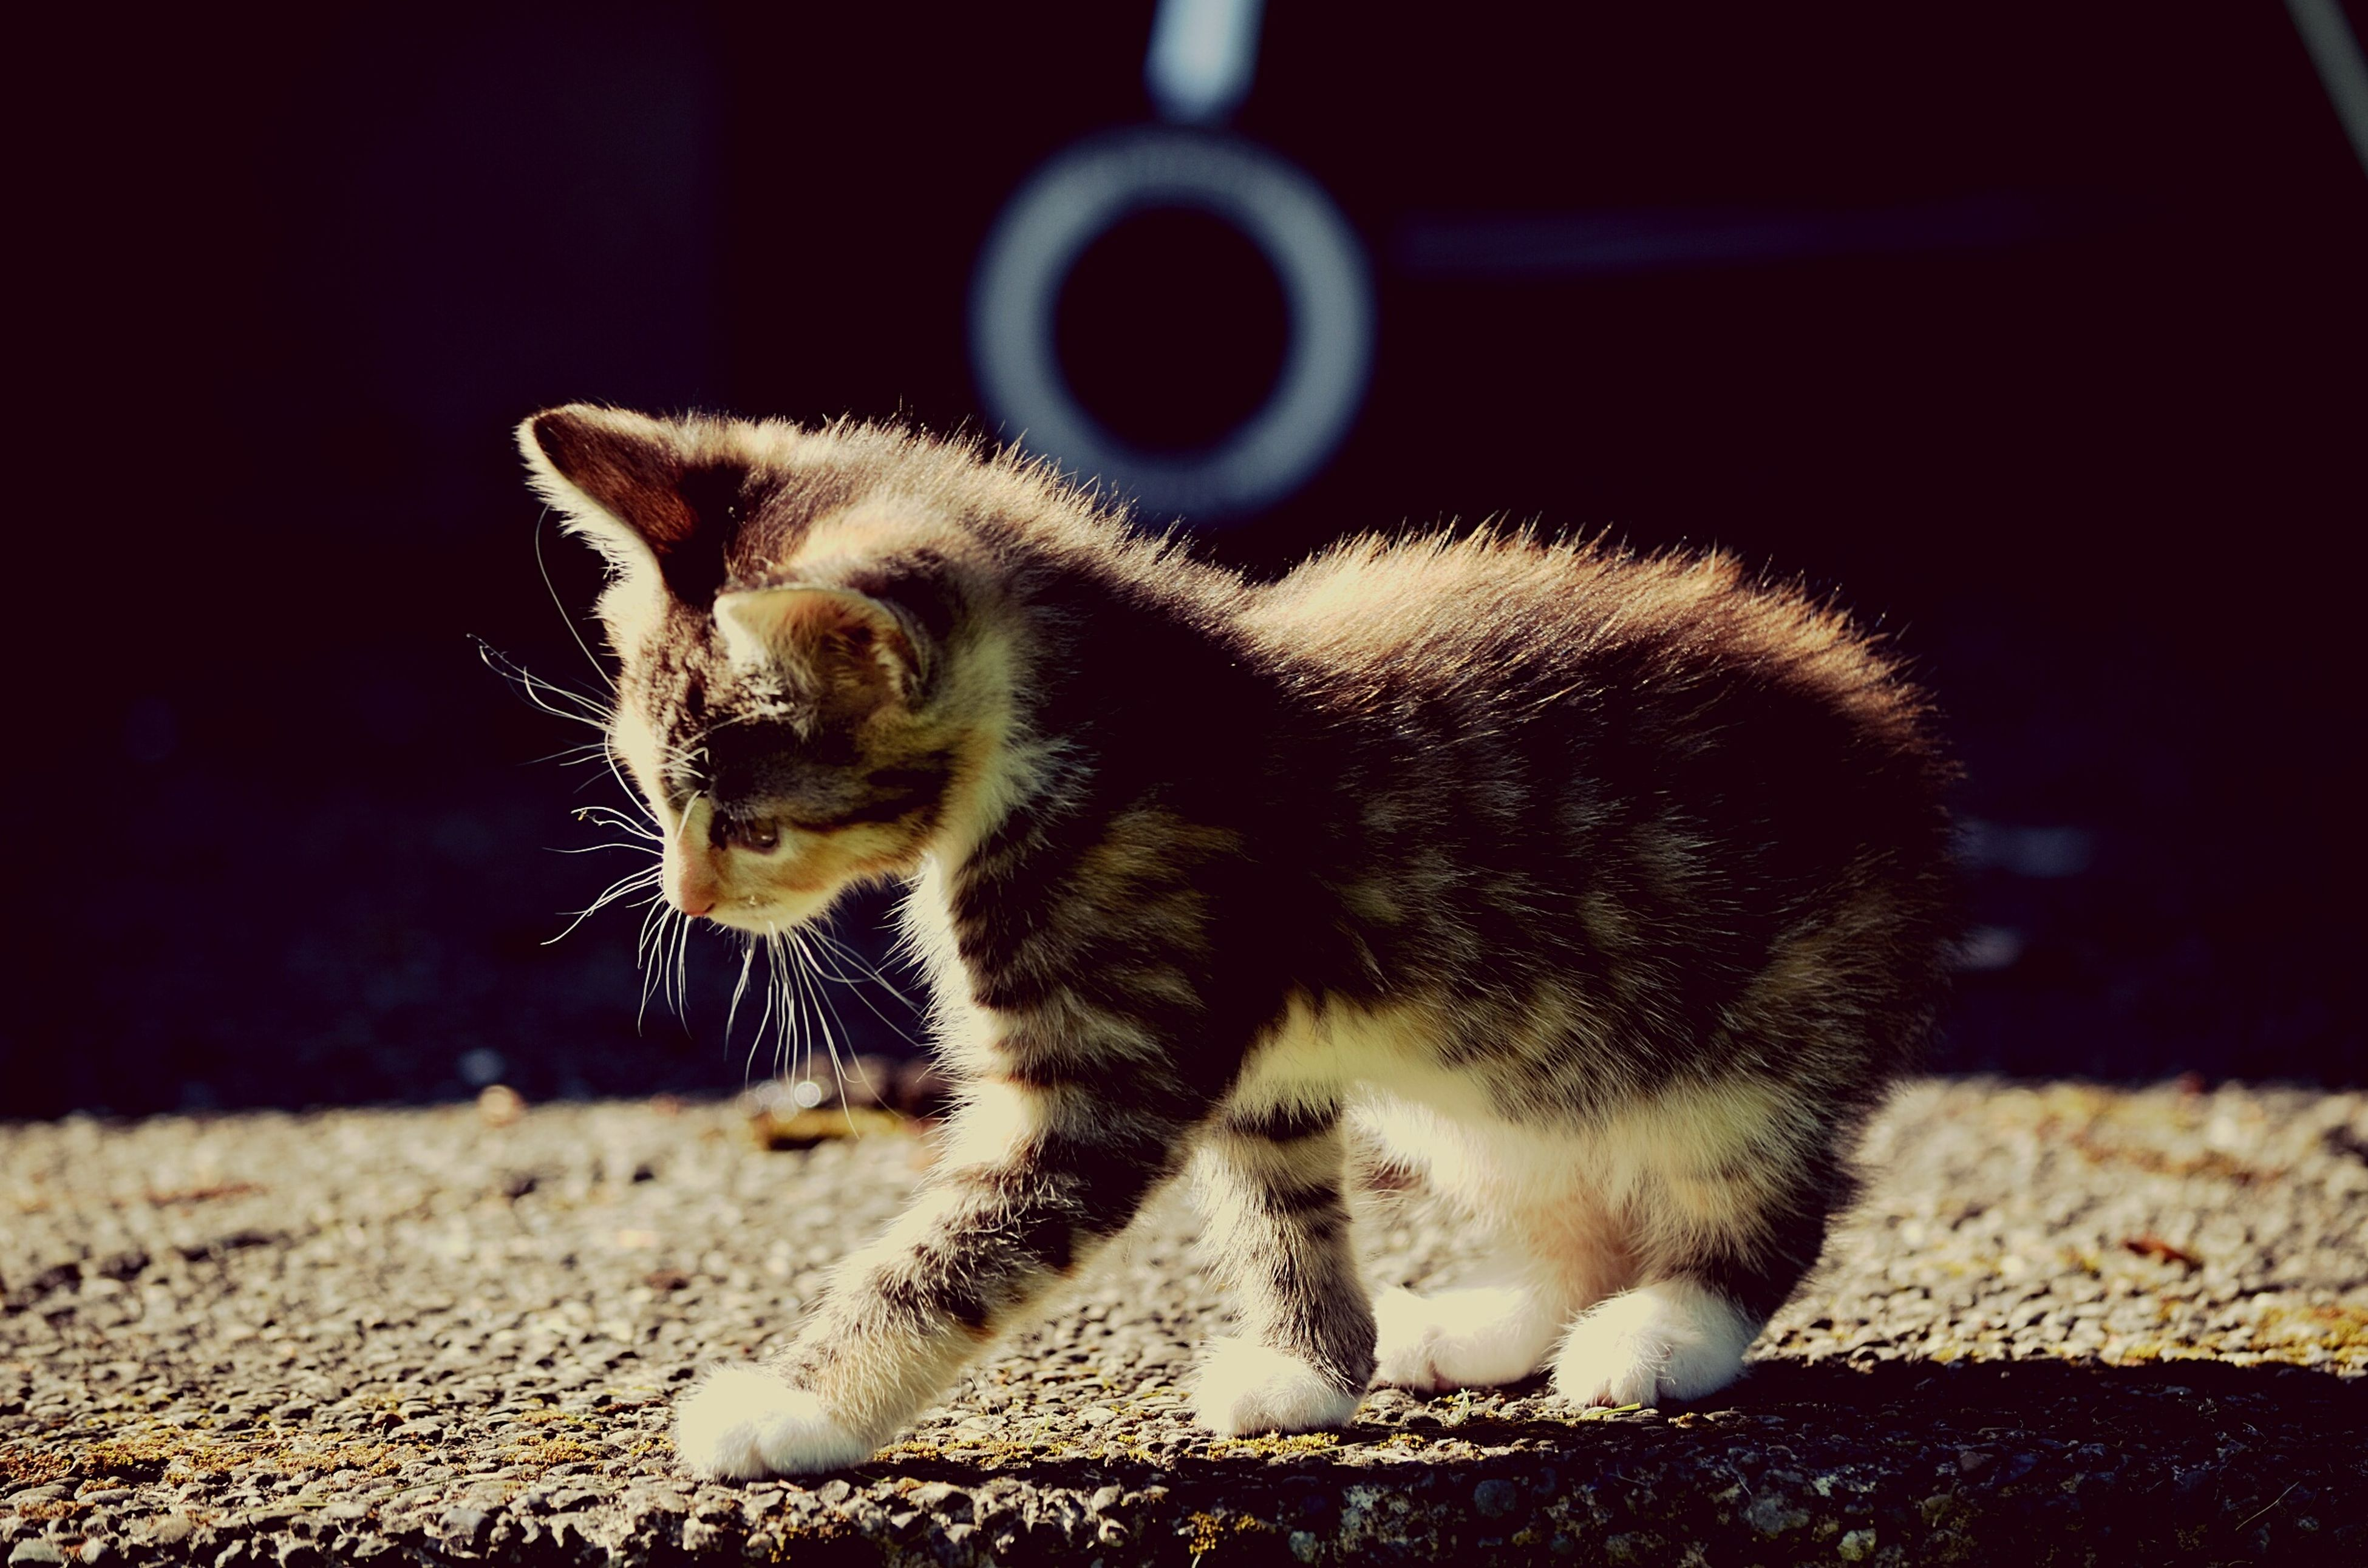 one animal, animal themes, pets, domestic animals, mammal, close-up, focus on foreground, domestic cat, street, animal head, cat, selective focus, whisker, feline, no people, full length, outdoors, side view, front view, day